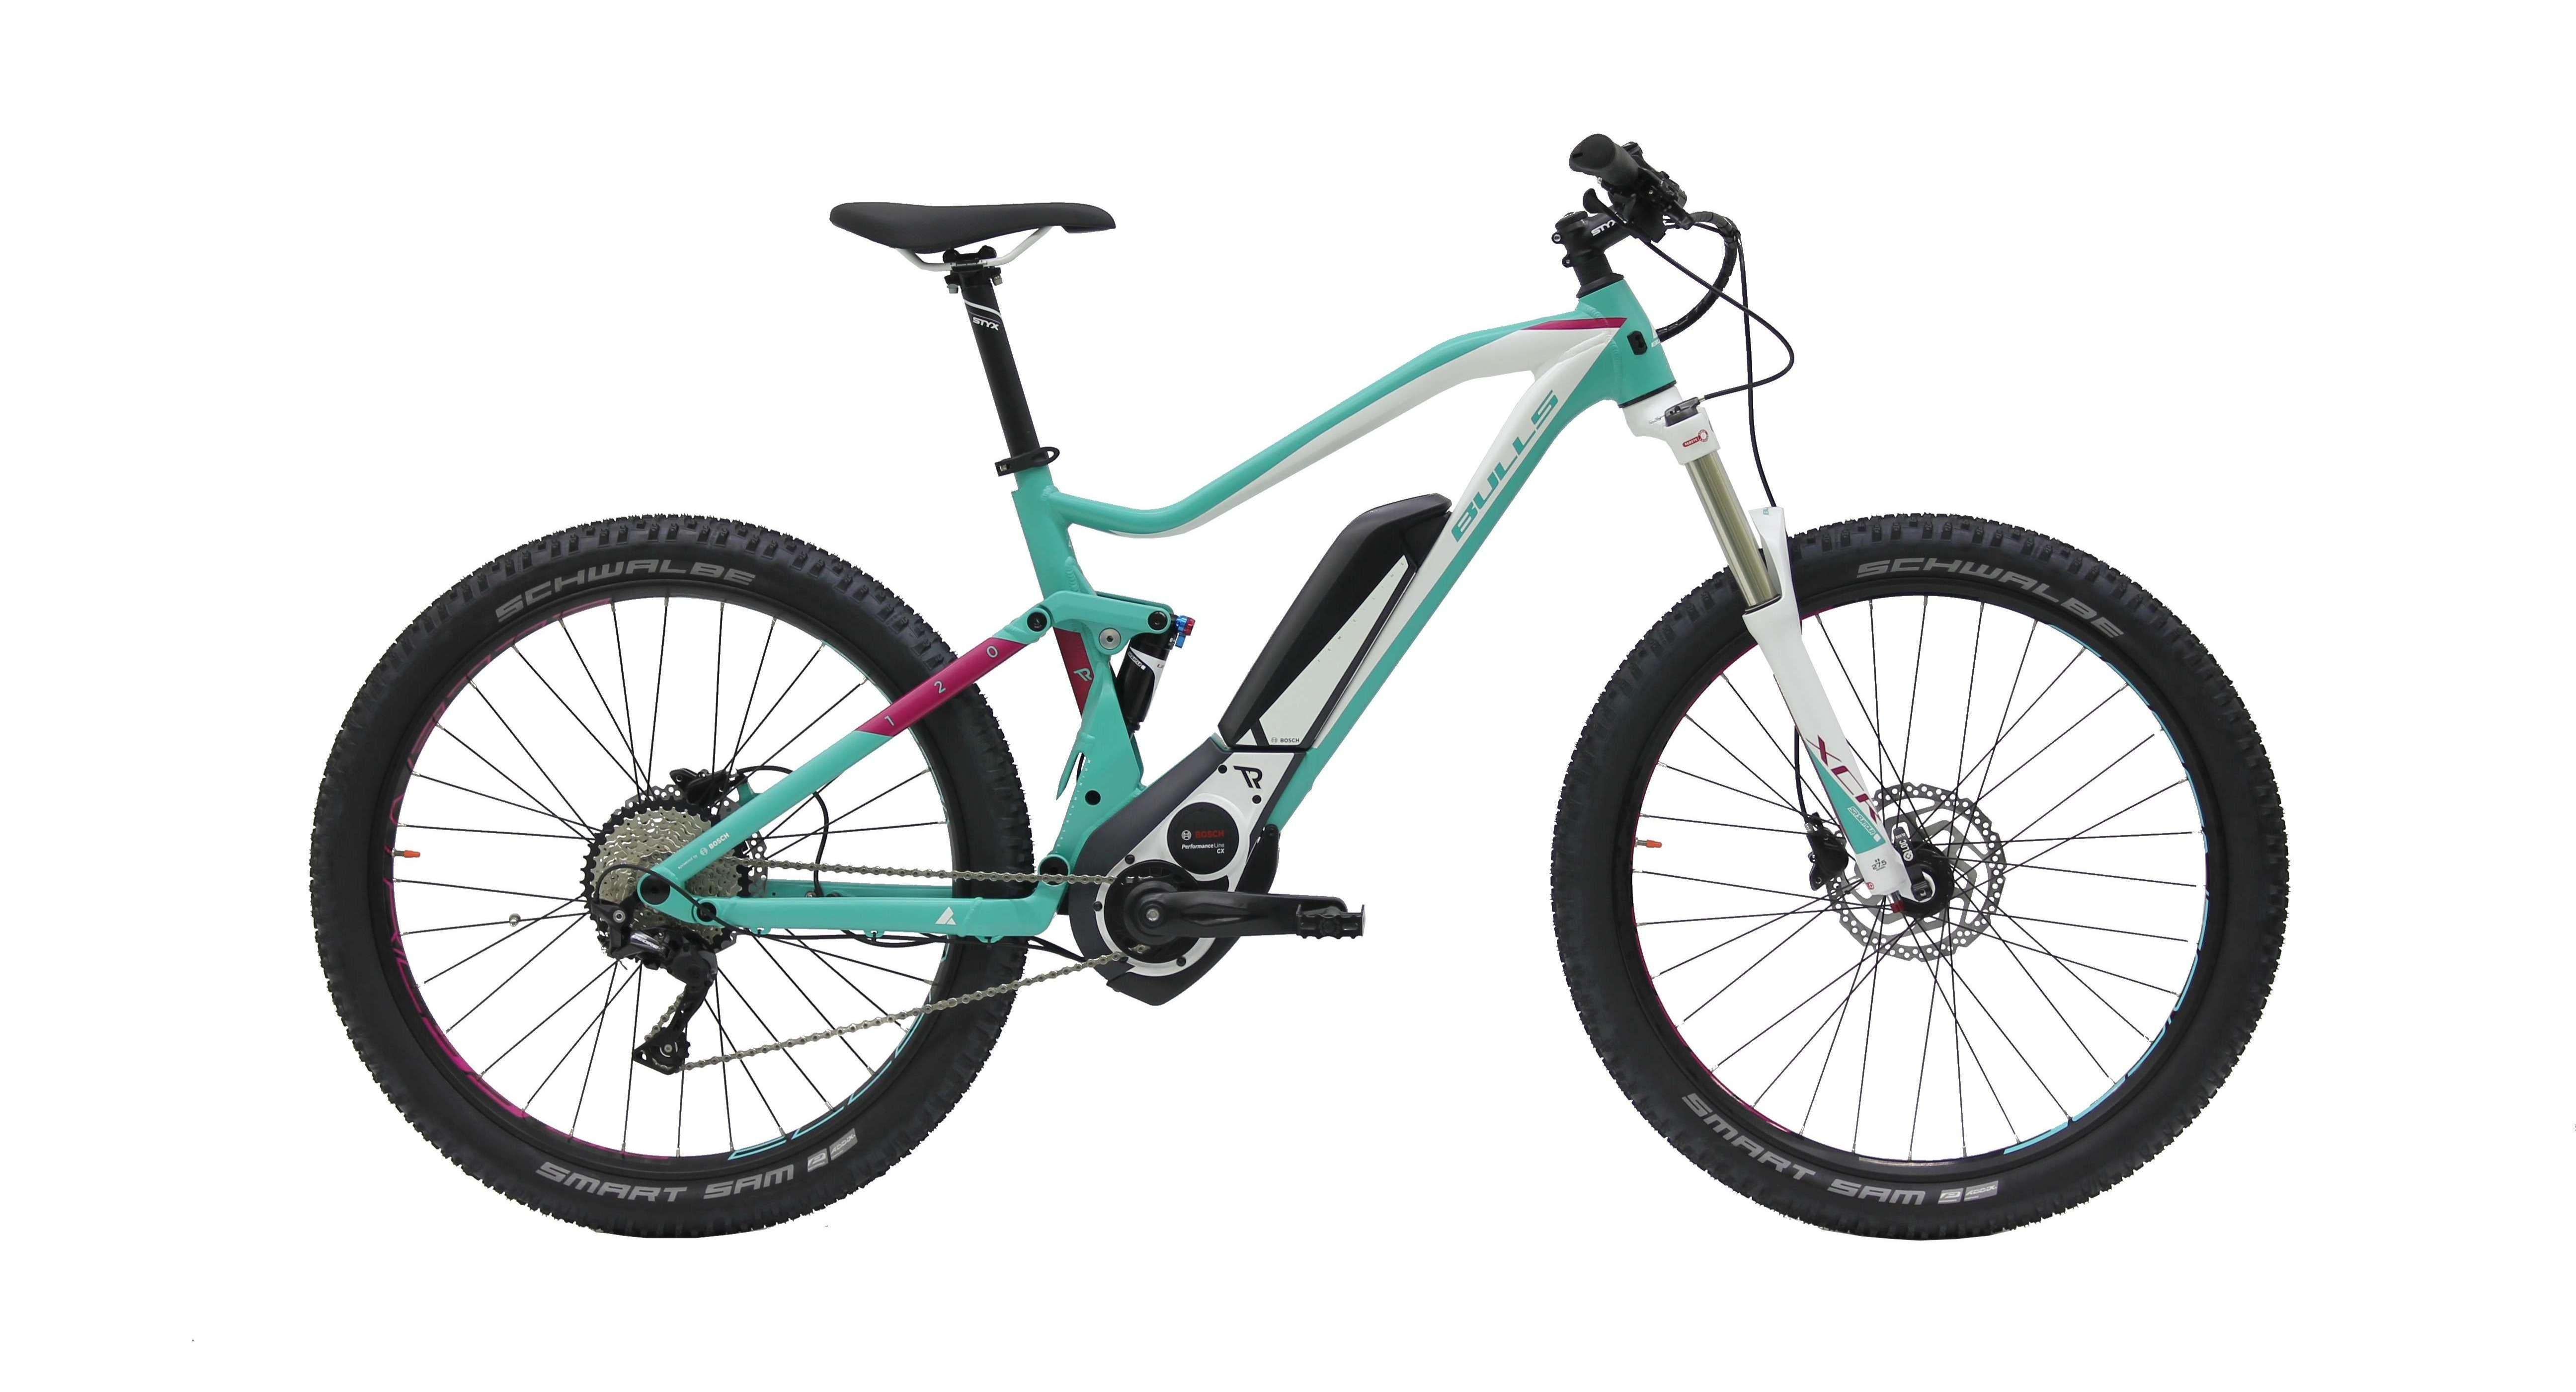 Bulls Electric bike dealers in Arizona, Bulls bikes, Bulls electric bikes, Bulls bicycles, Bulls